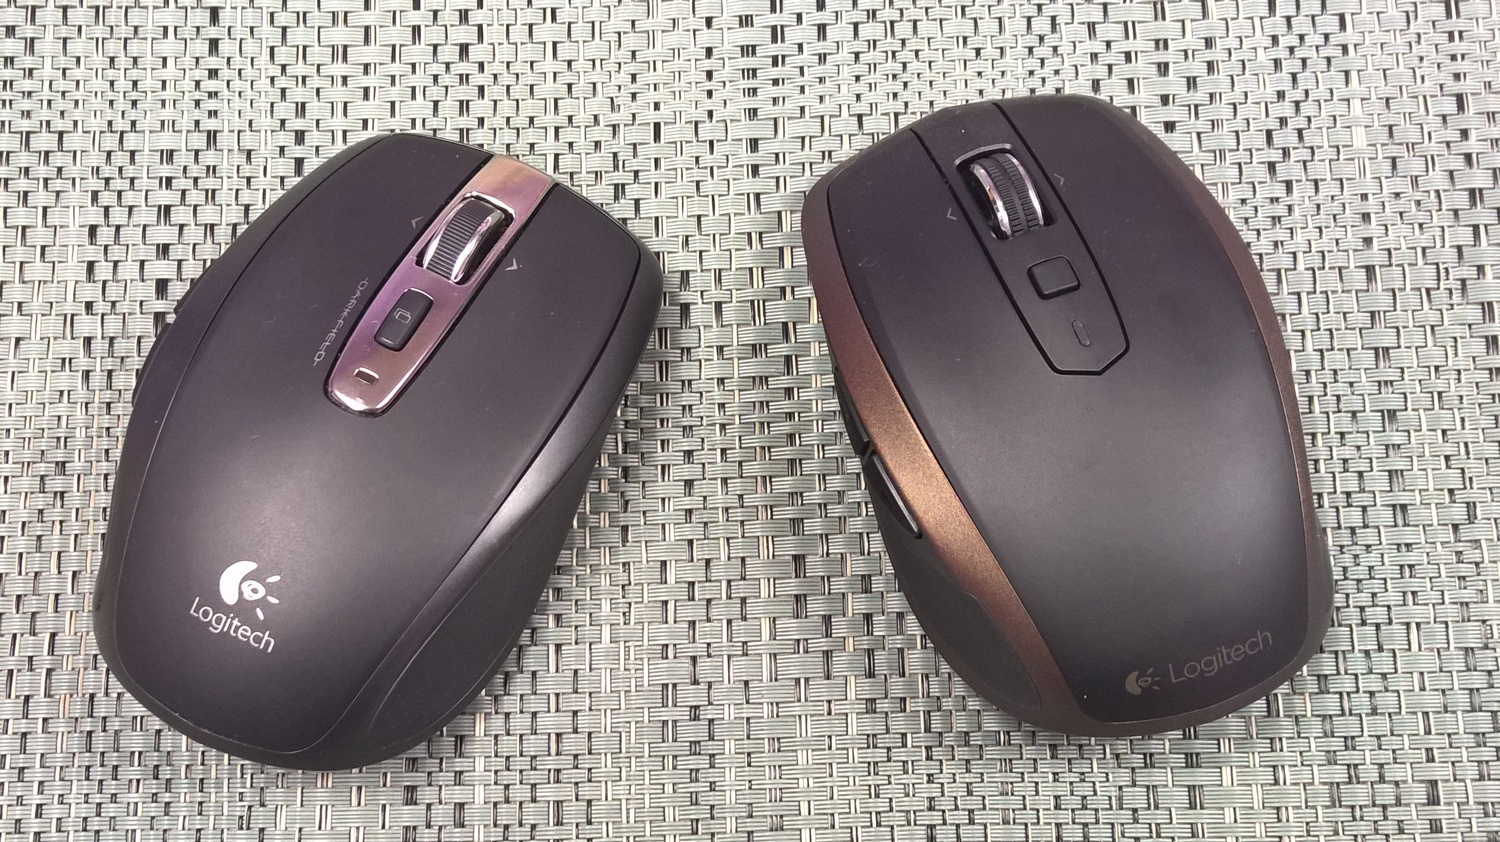 The Logitech MX Anywhere 2 Mouse: Portable Performance